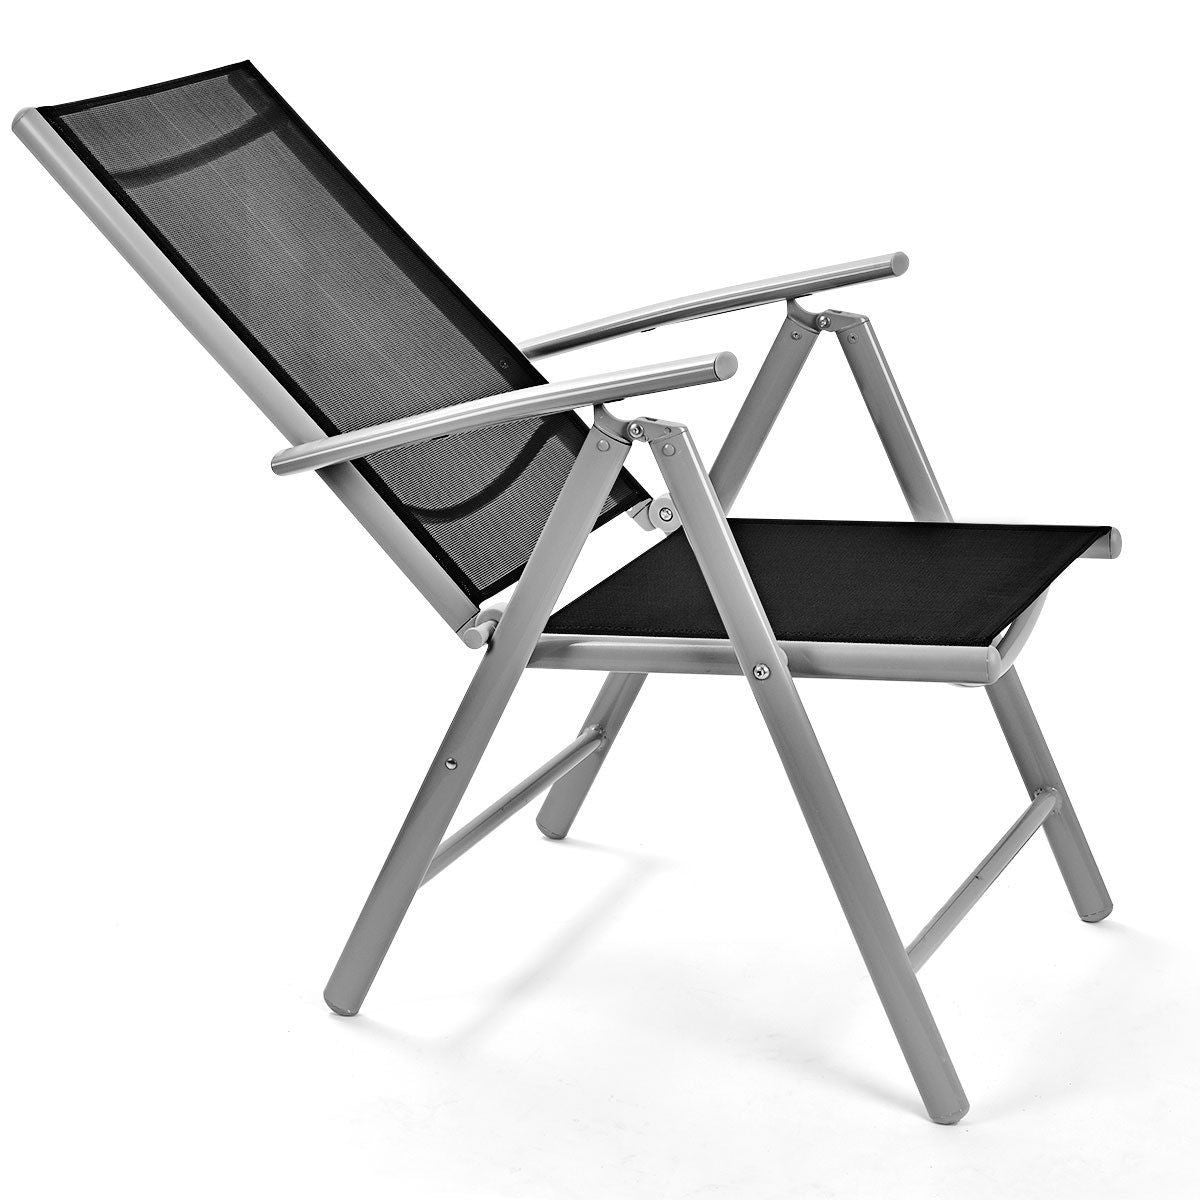 Set of 2 Folding Outdoor Patio Chairs with Black Mesh Seat and Grey Metal Frame